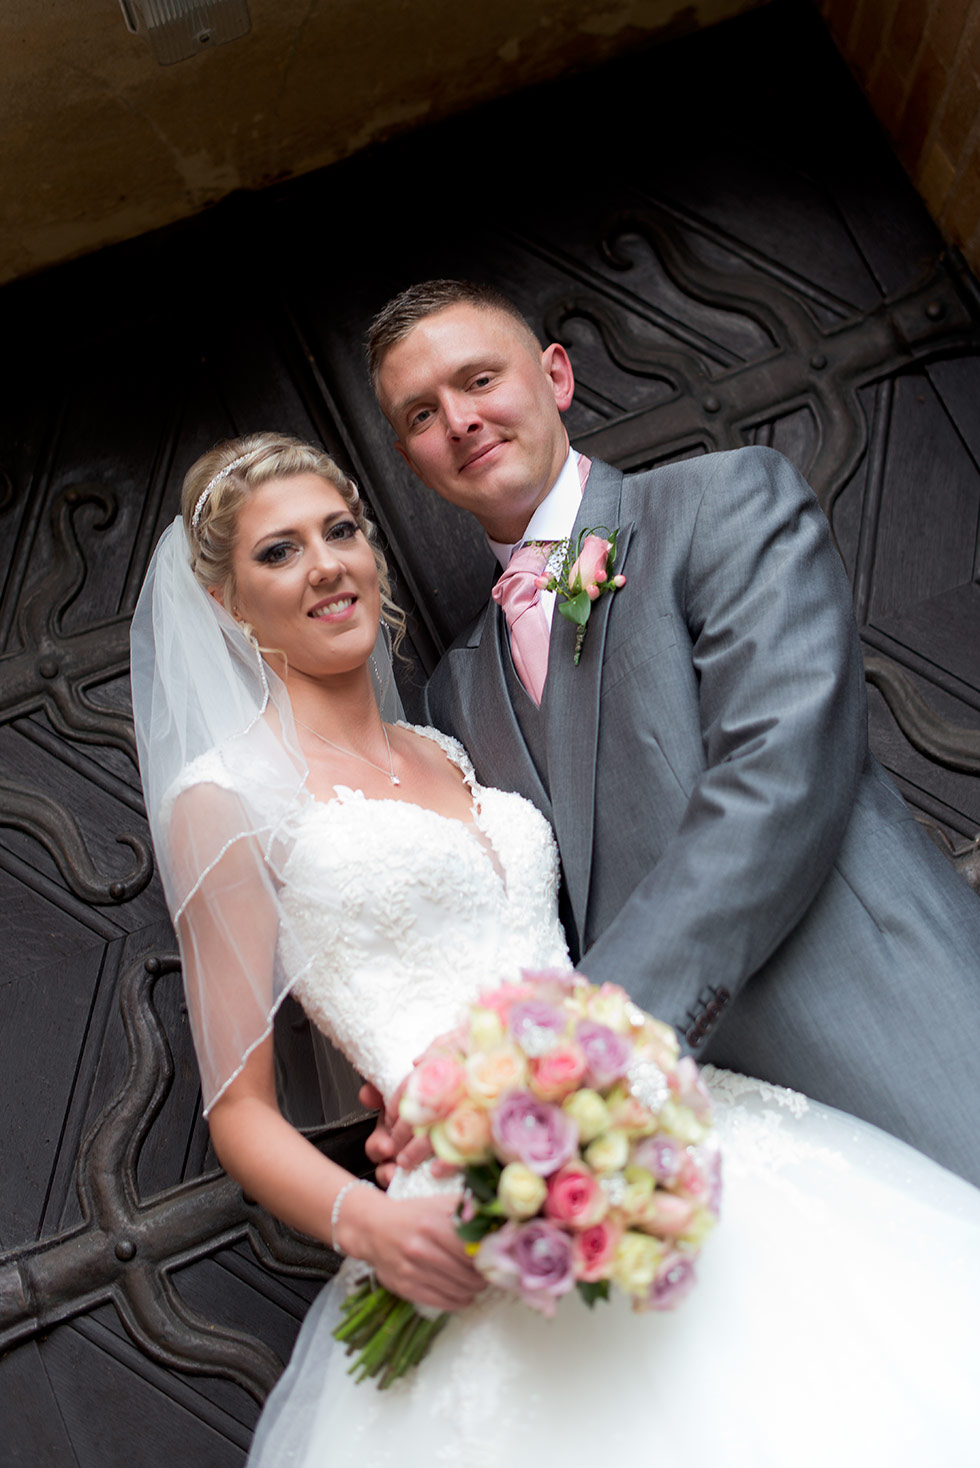 derbyshire-wedding-dusky-pink-and-silver-wedding-palette-autumn-wedding-matt-selby-photography-24